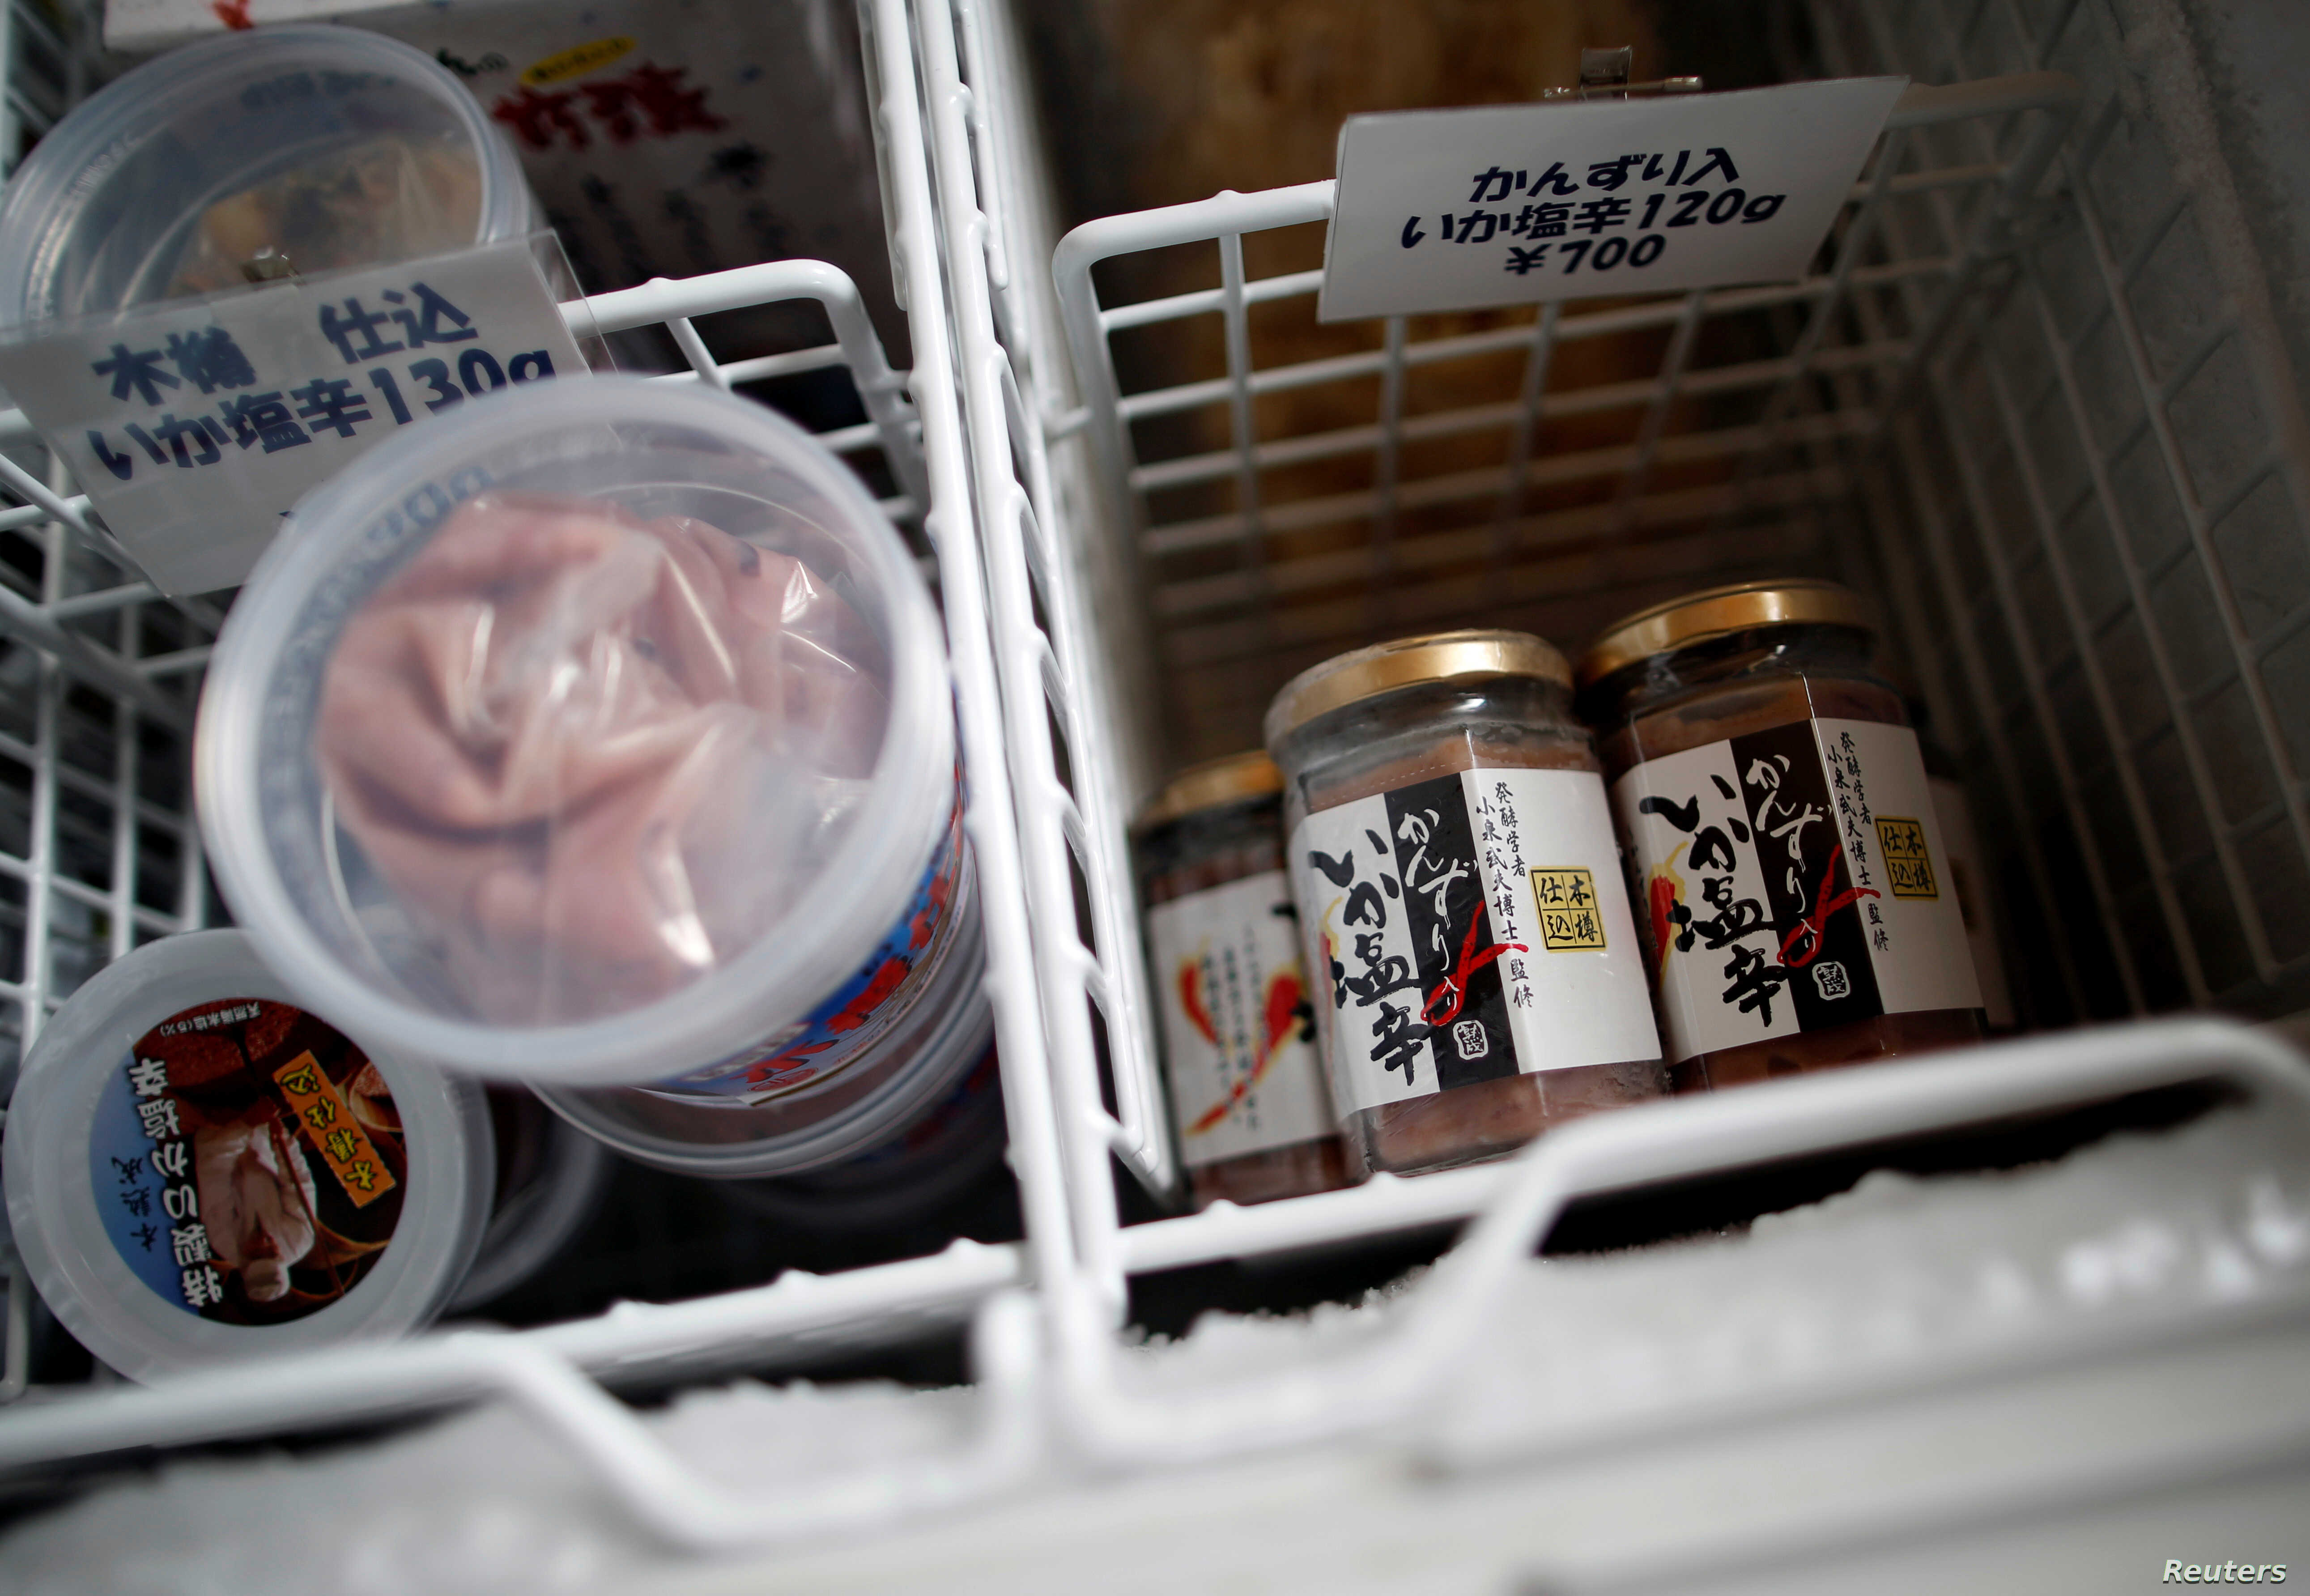 Products of 'Shio-kara', a traditional fermented squid dish, are seen inside a freezer at a factory owned by Takashi Odajima in Hakodate, Hokkaido, Japan, July 19, 2018.